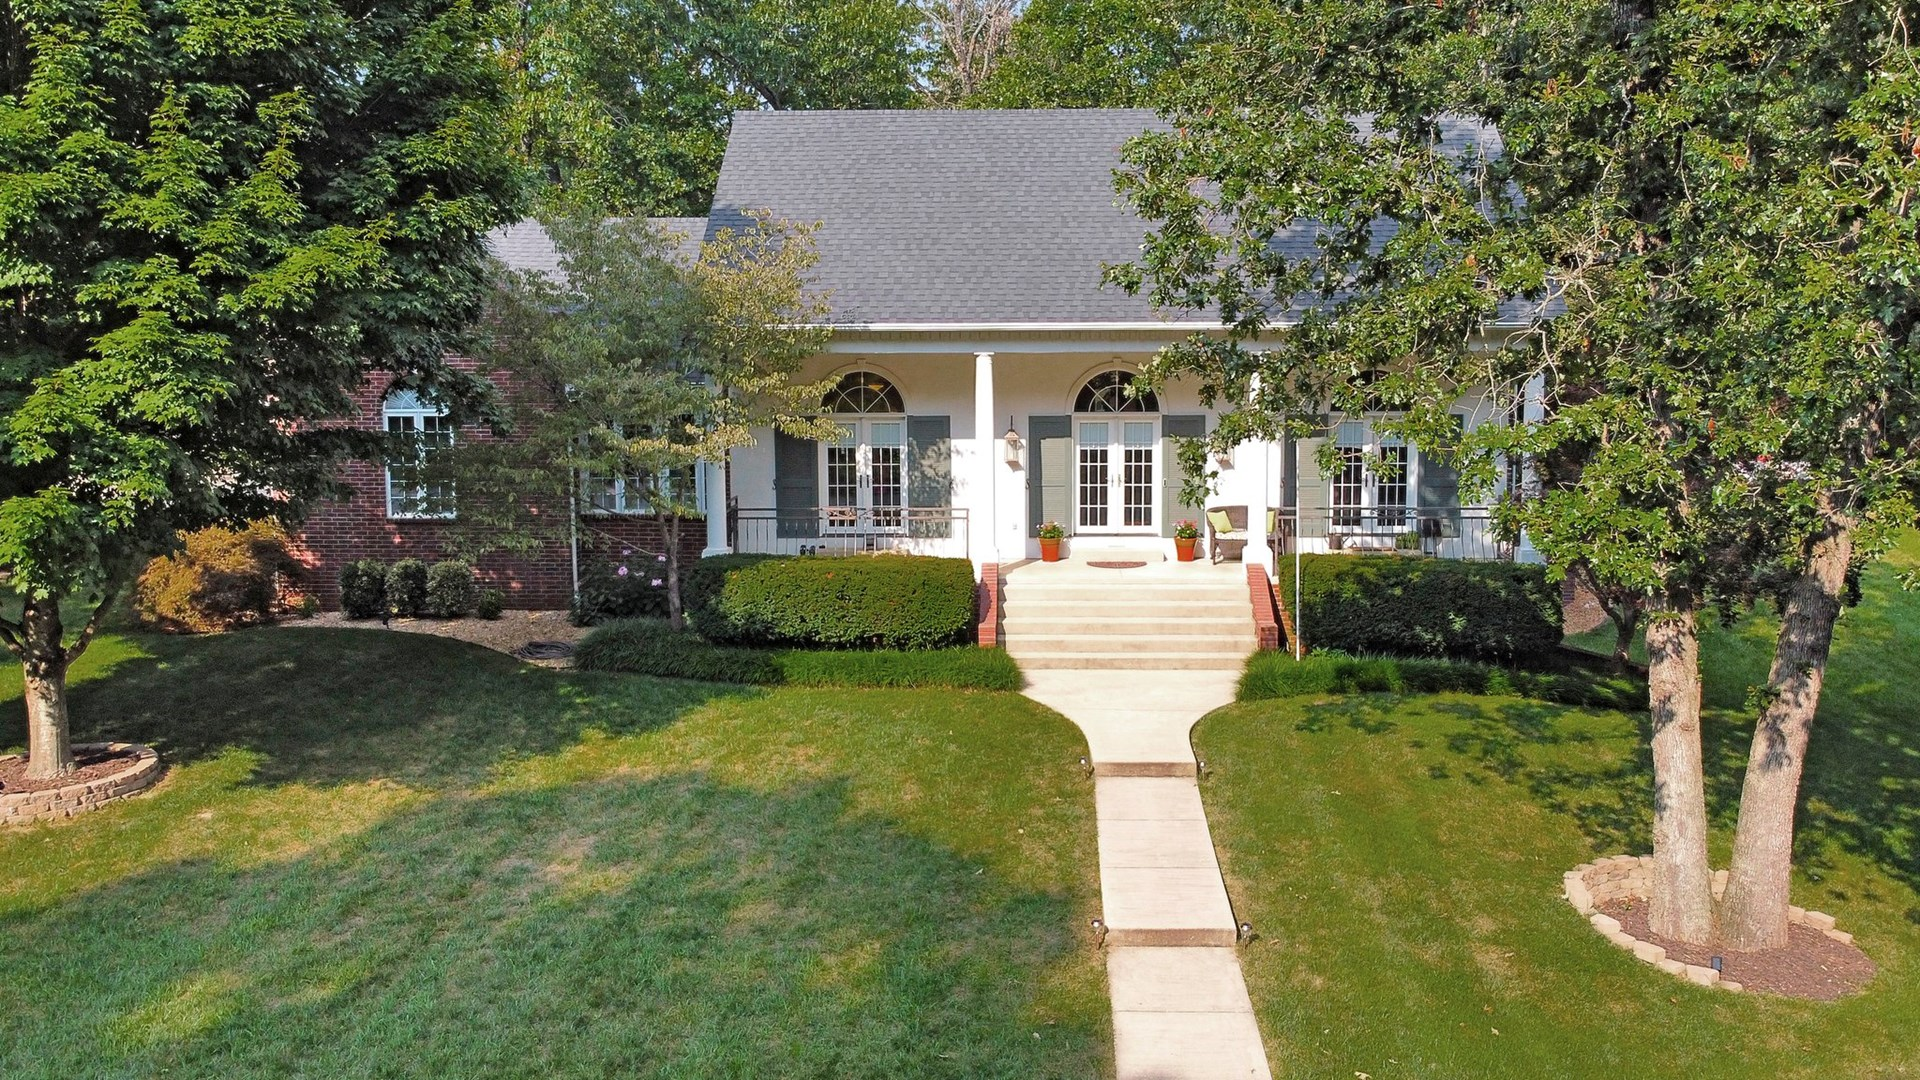 Contemporary Colonial Home for Sale in West Plains, MO